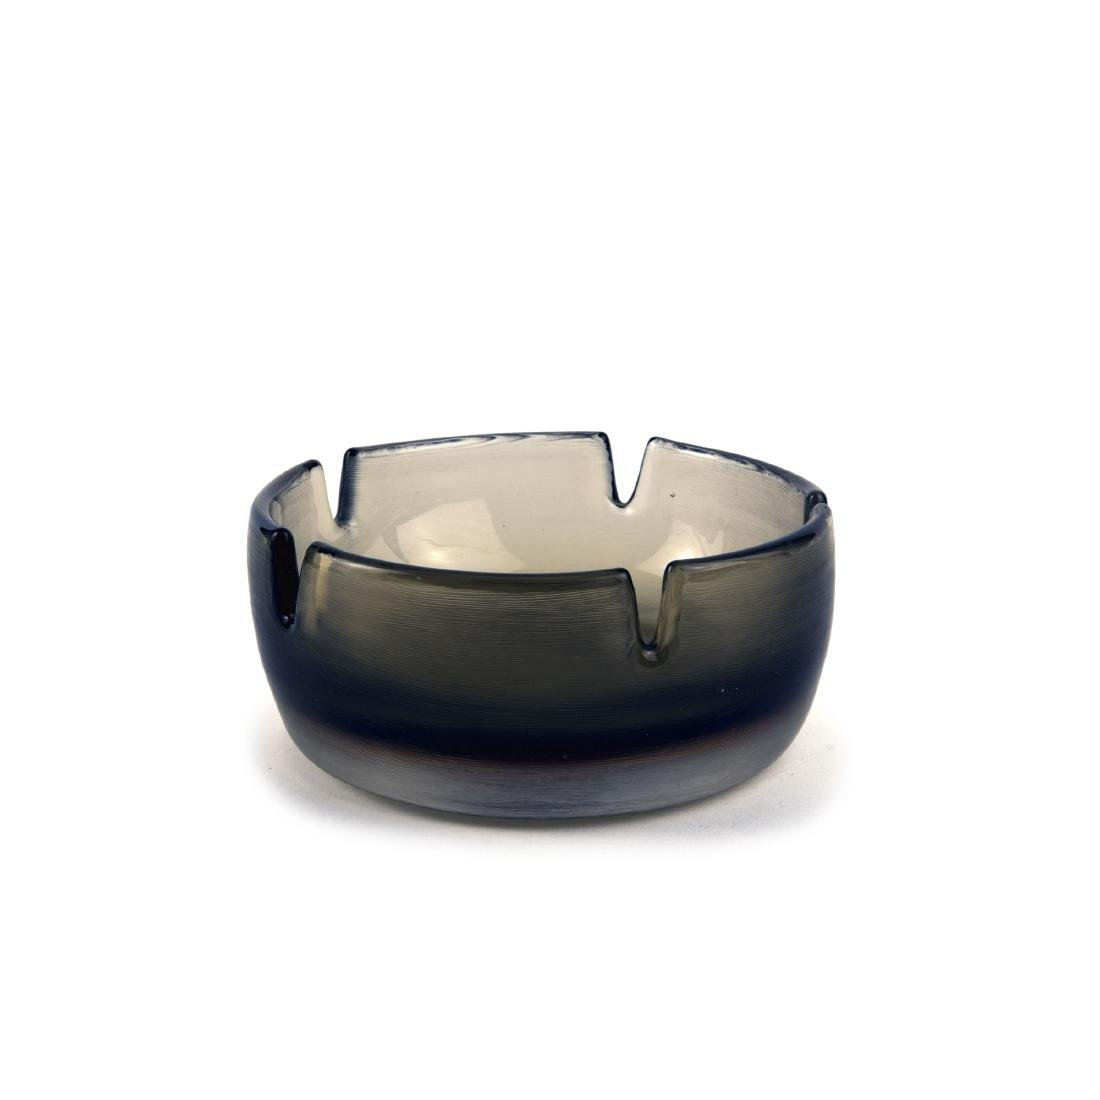 'Inciso' ashtray, c1956